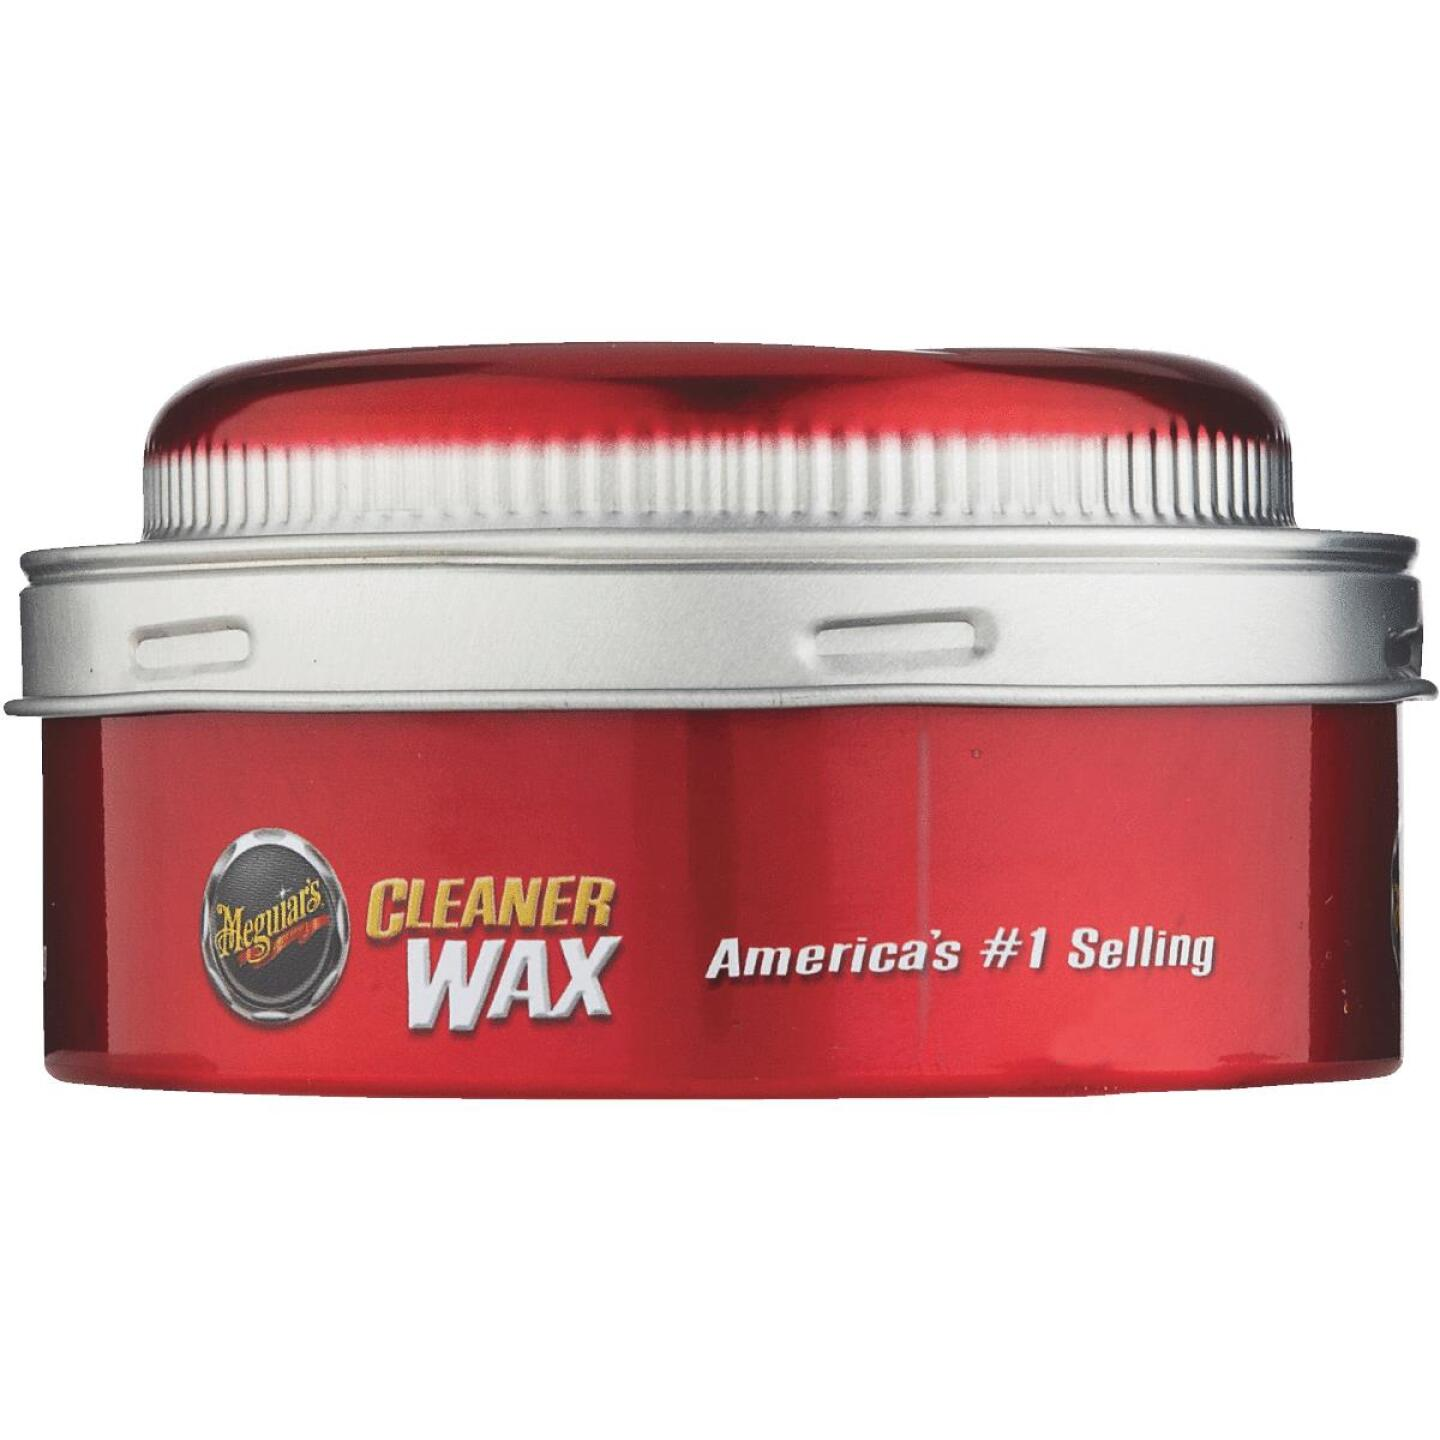 Meguiars 11 oz Paste Car Wax Image 2